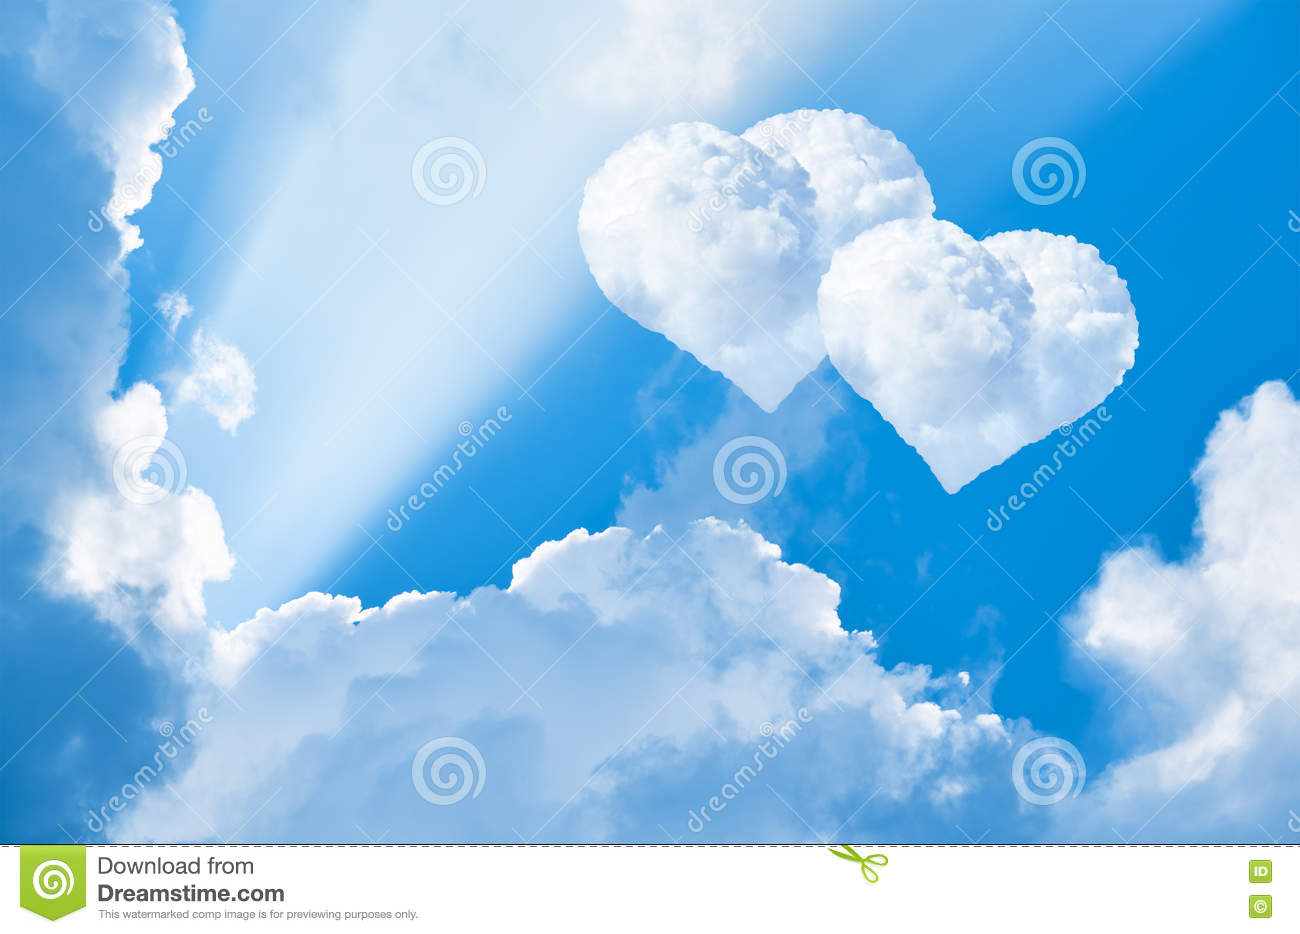 clouds in the shape of heart in the sky stock image - image of